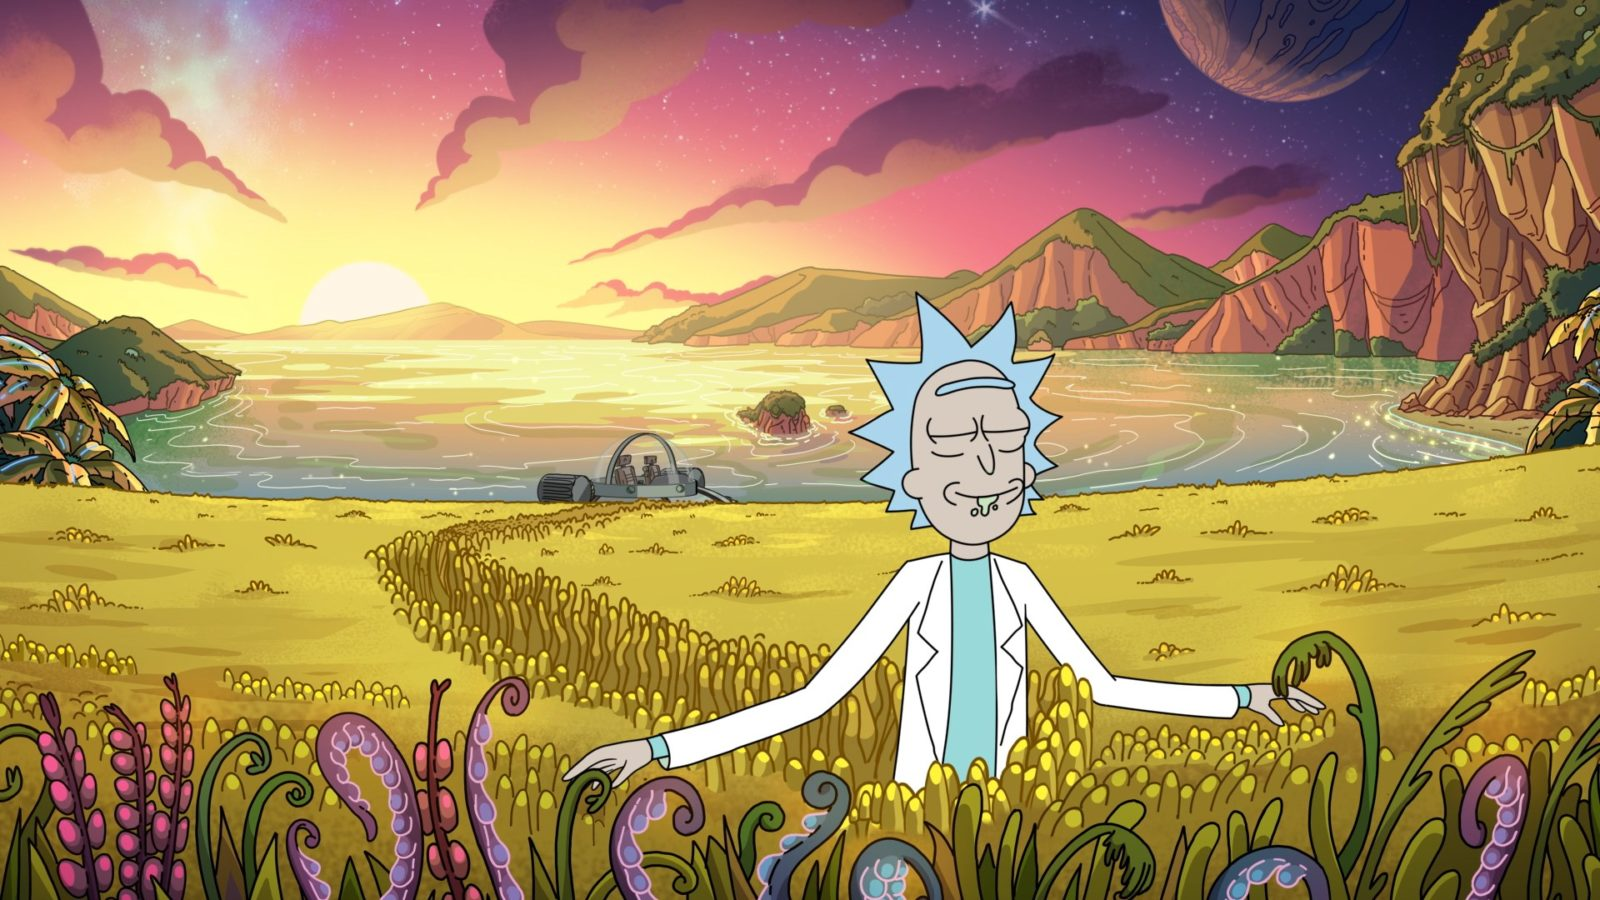 Rick And Morty Season 4 Uk Release Date What Time It S On E4 Tonight And How Many Episodes Are In The New Series